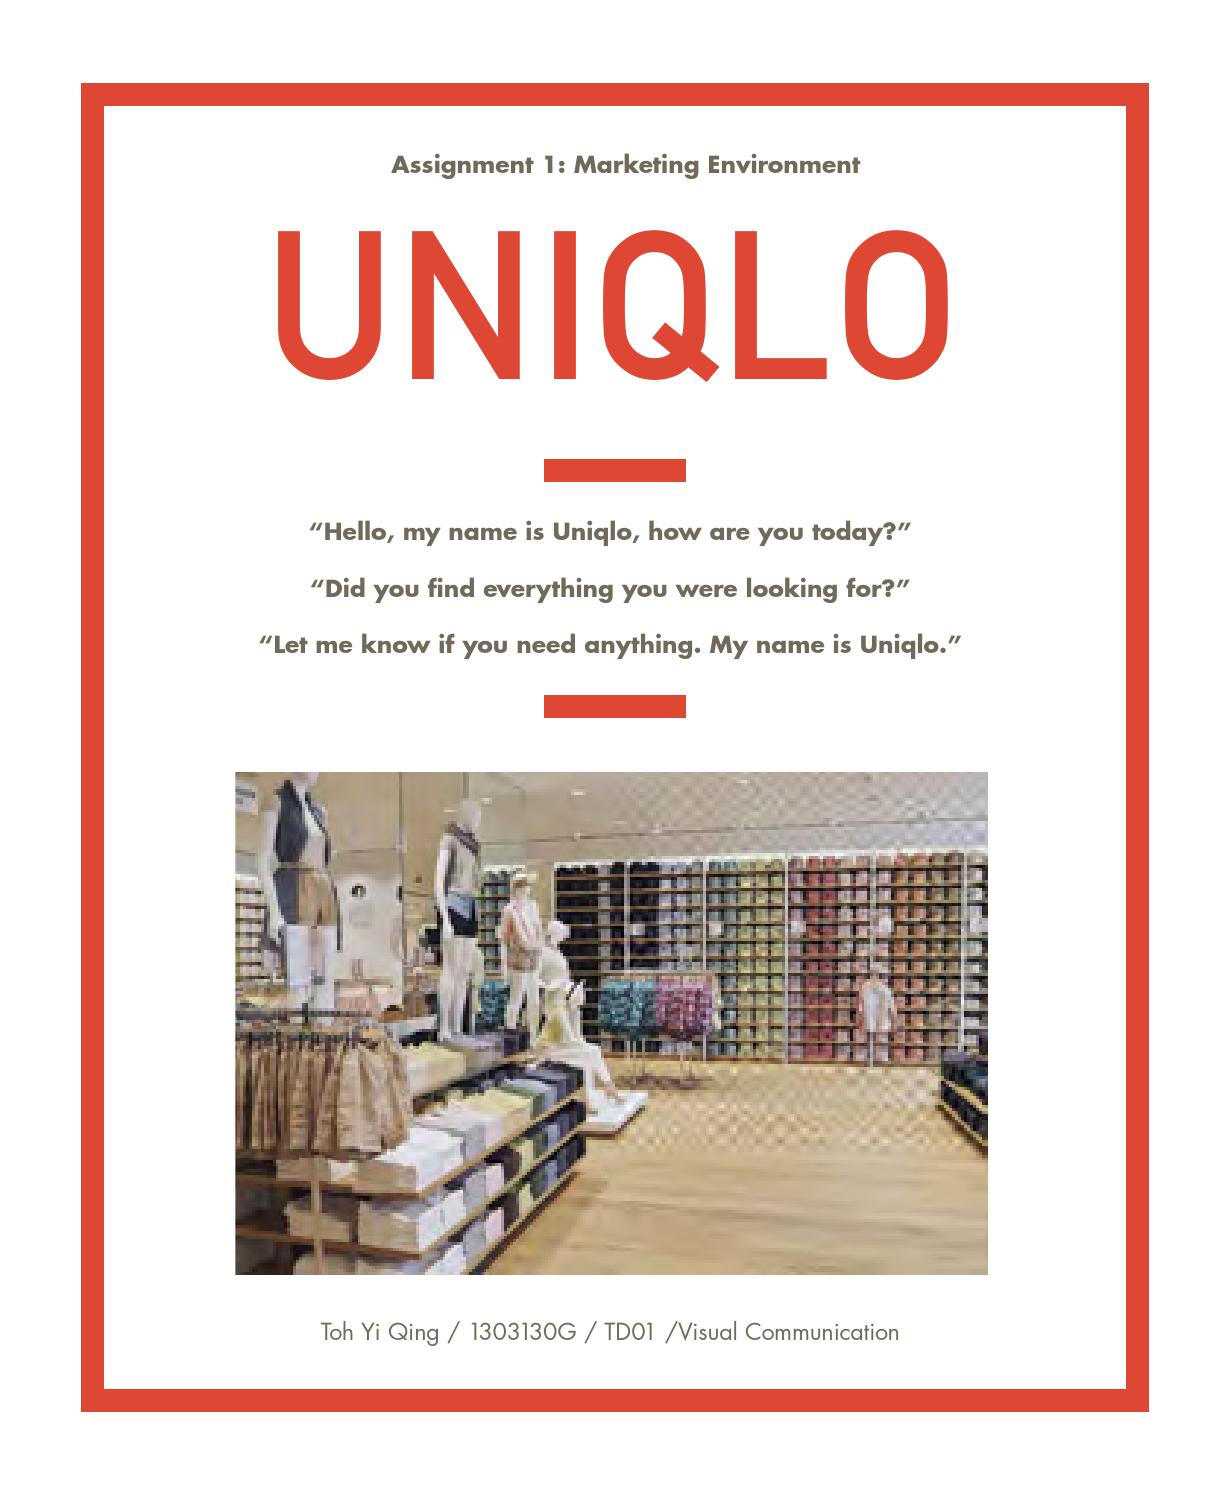 A report on uniqlo